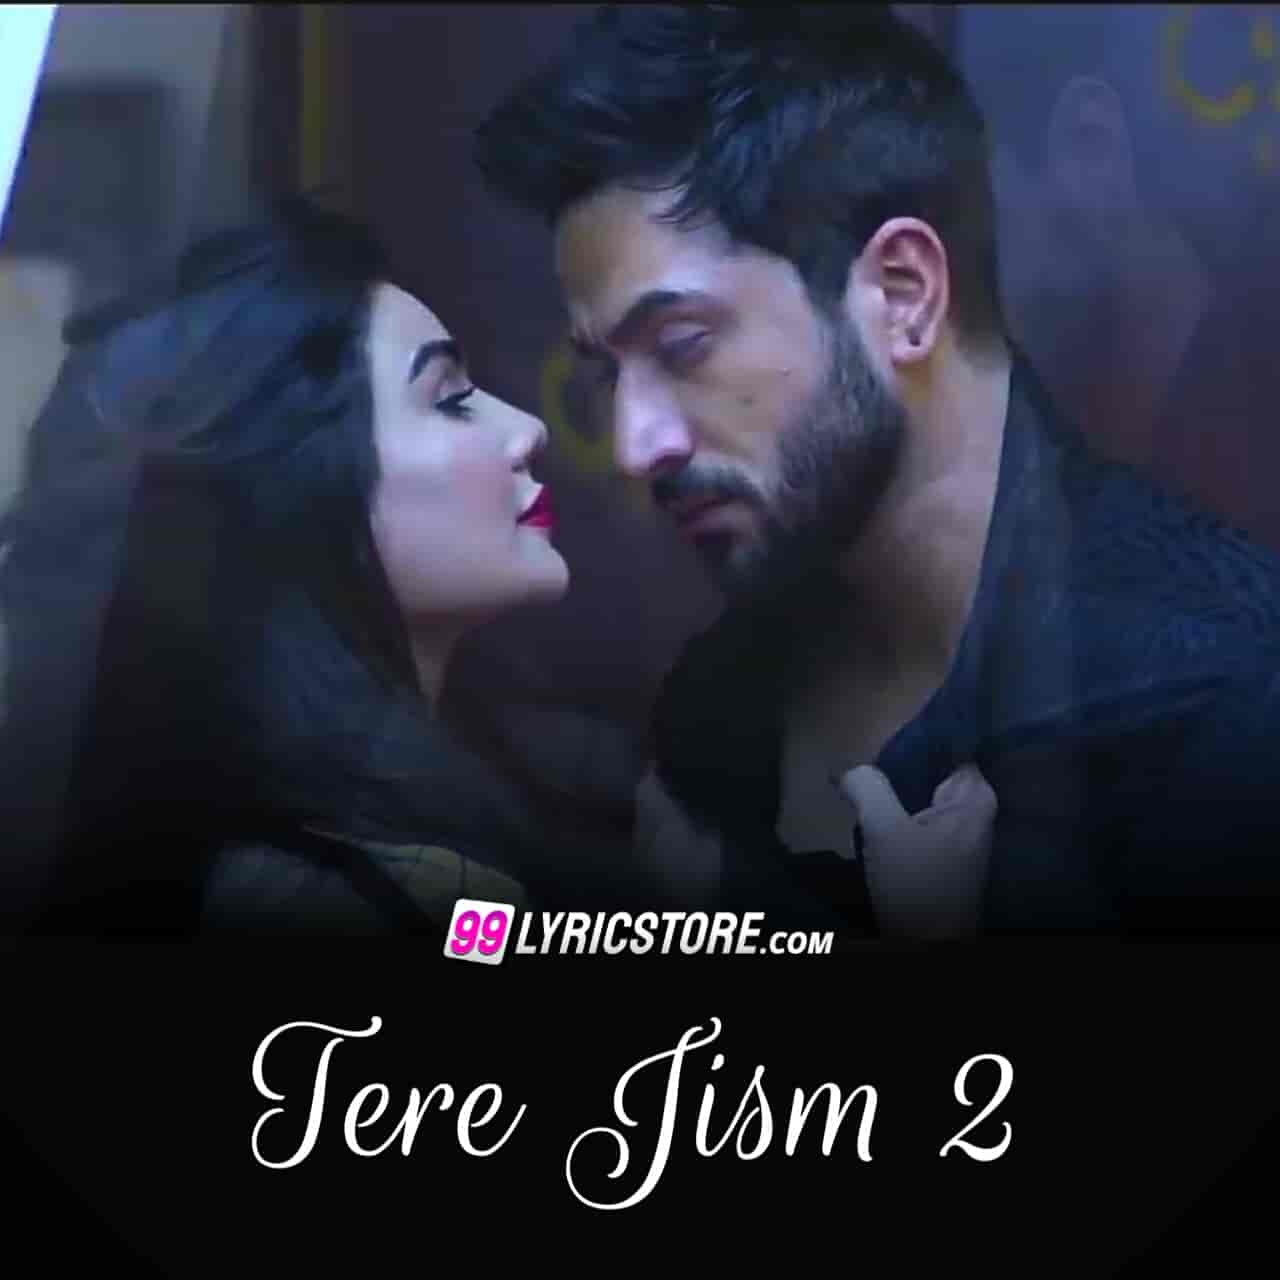 Tere Jism 2 romantic song sung by altaaf sayyed